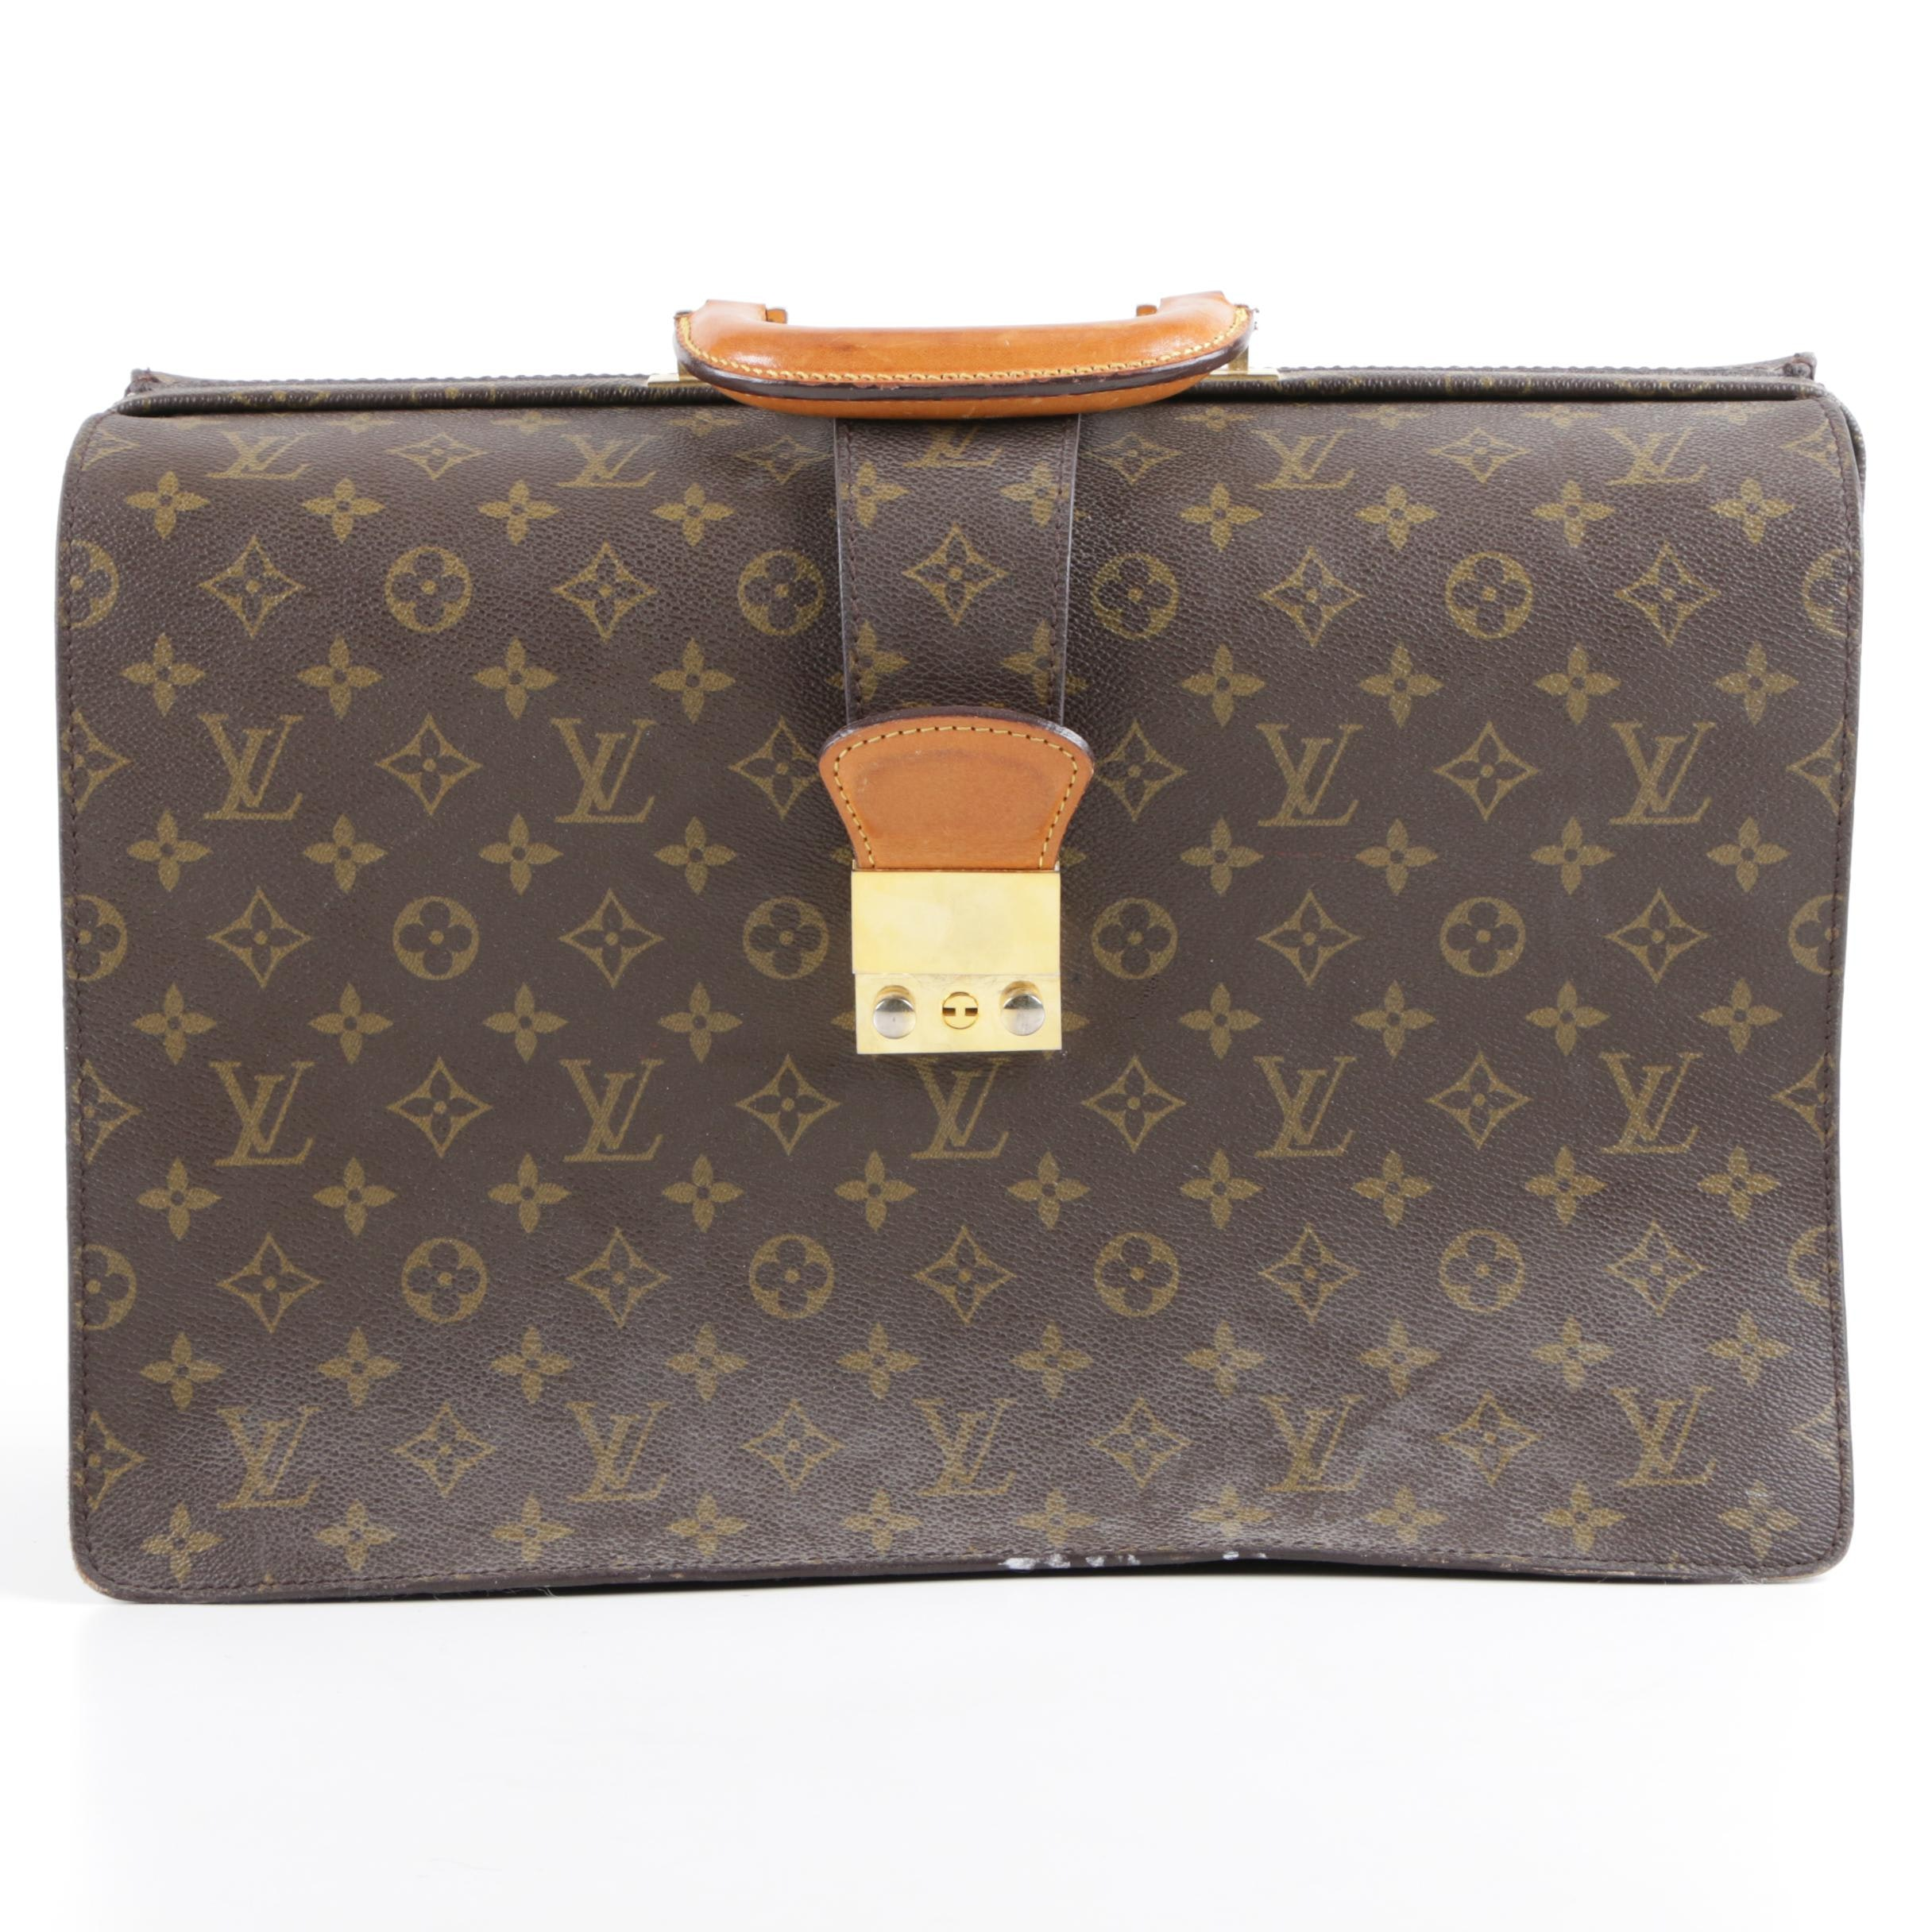 Louis Vuitton Monogram Canvas Serviette Fermoir Briefcase